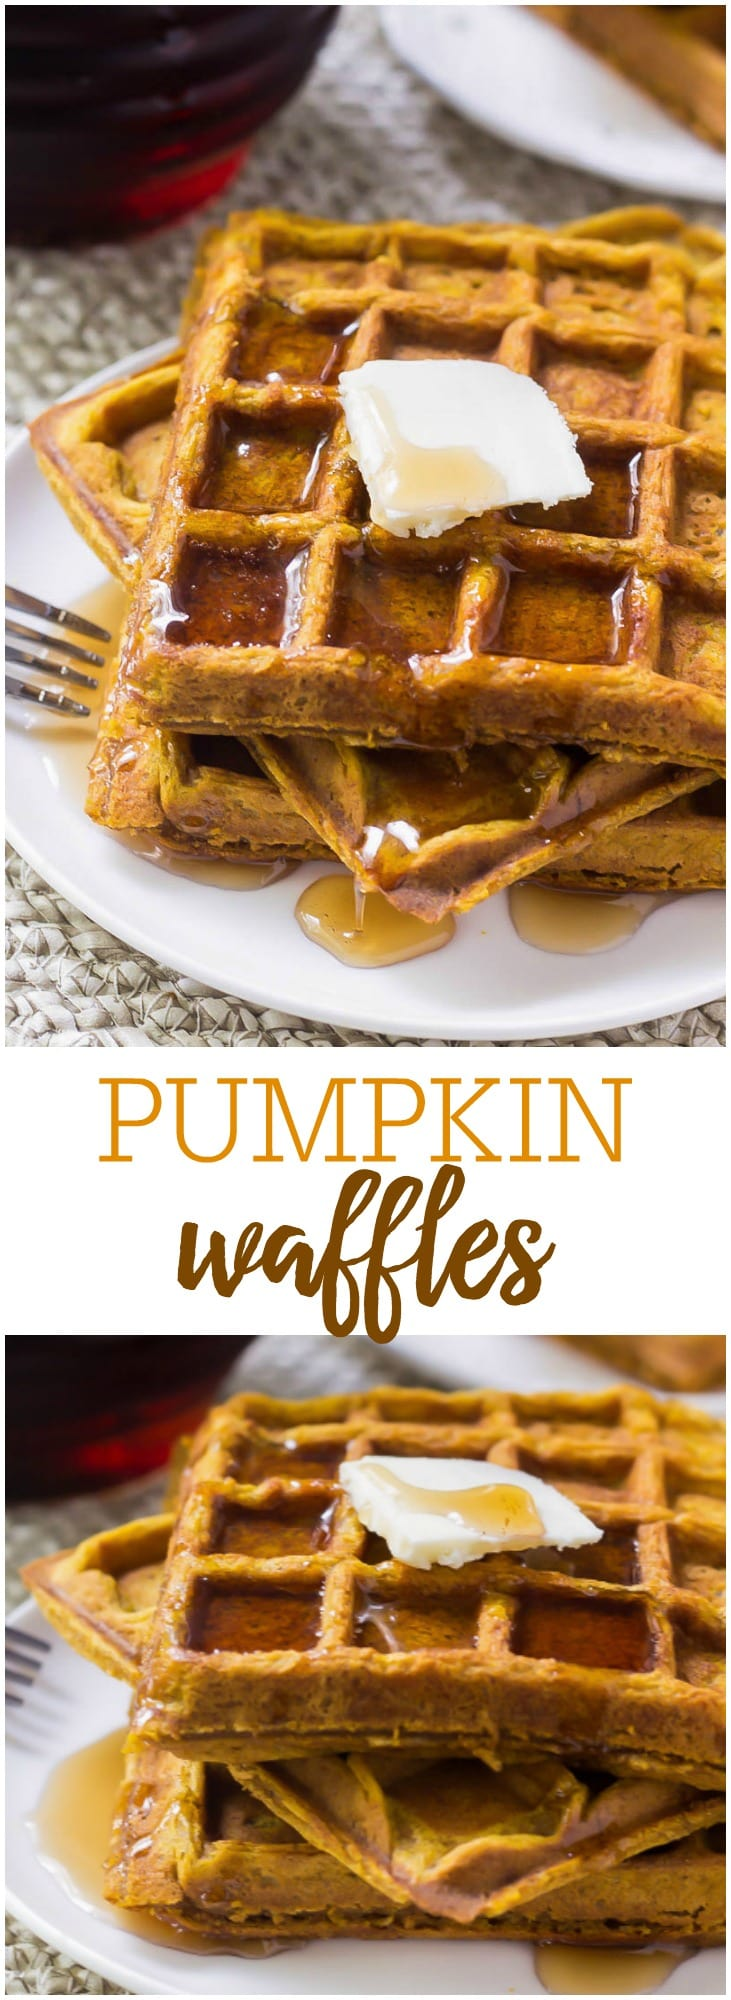 These soft & fluffy Pumpkin Waffles are filled with pumpkin pie spices and delicious pumpkin. So easy to make, and perfect for fall!